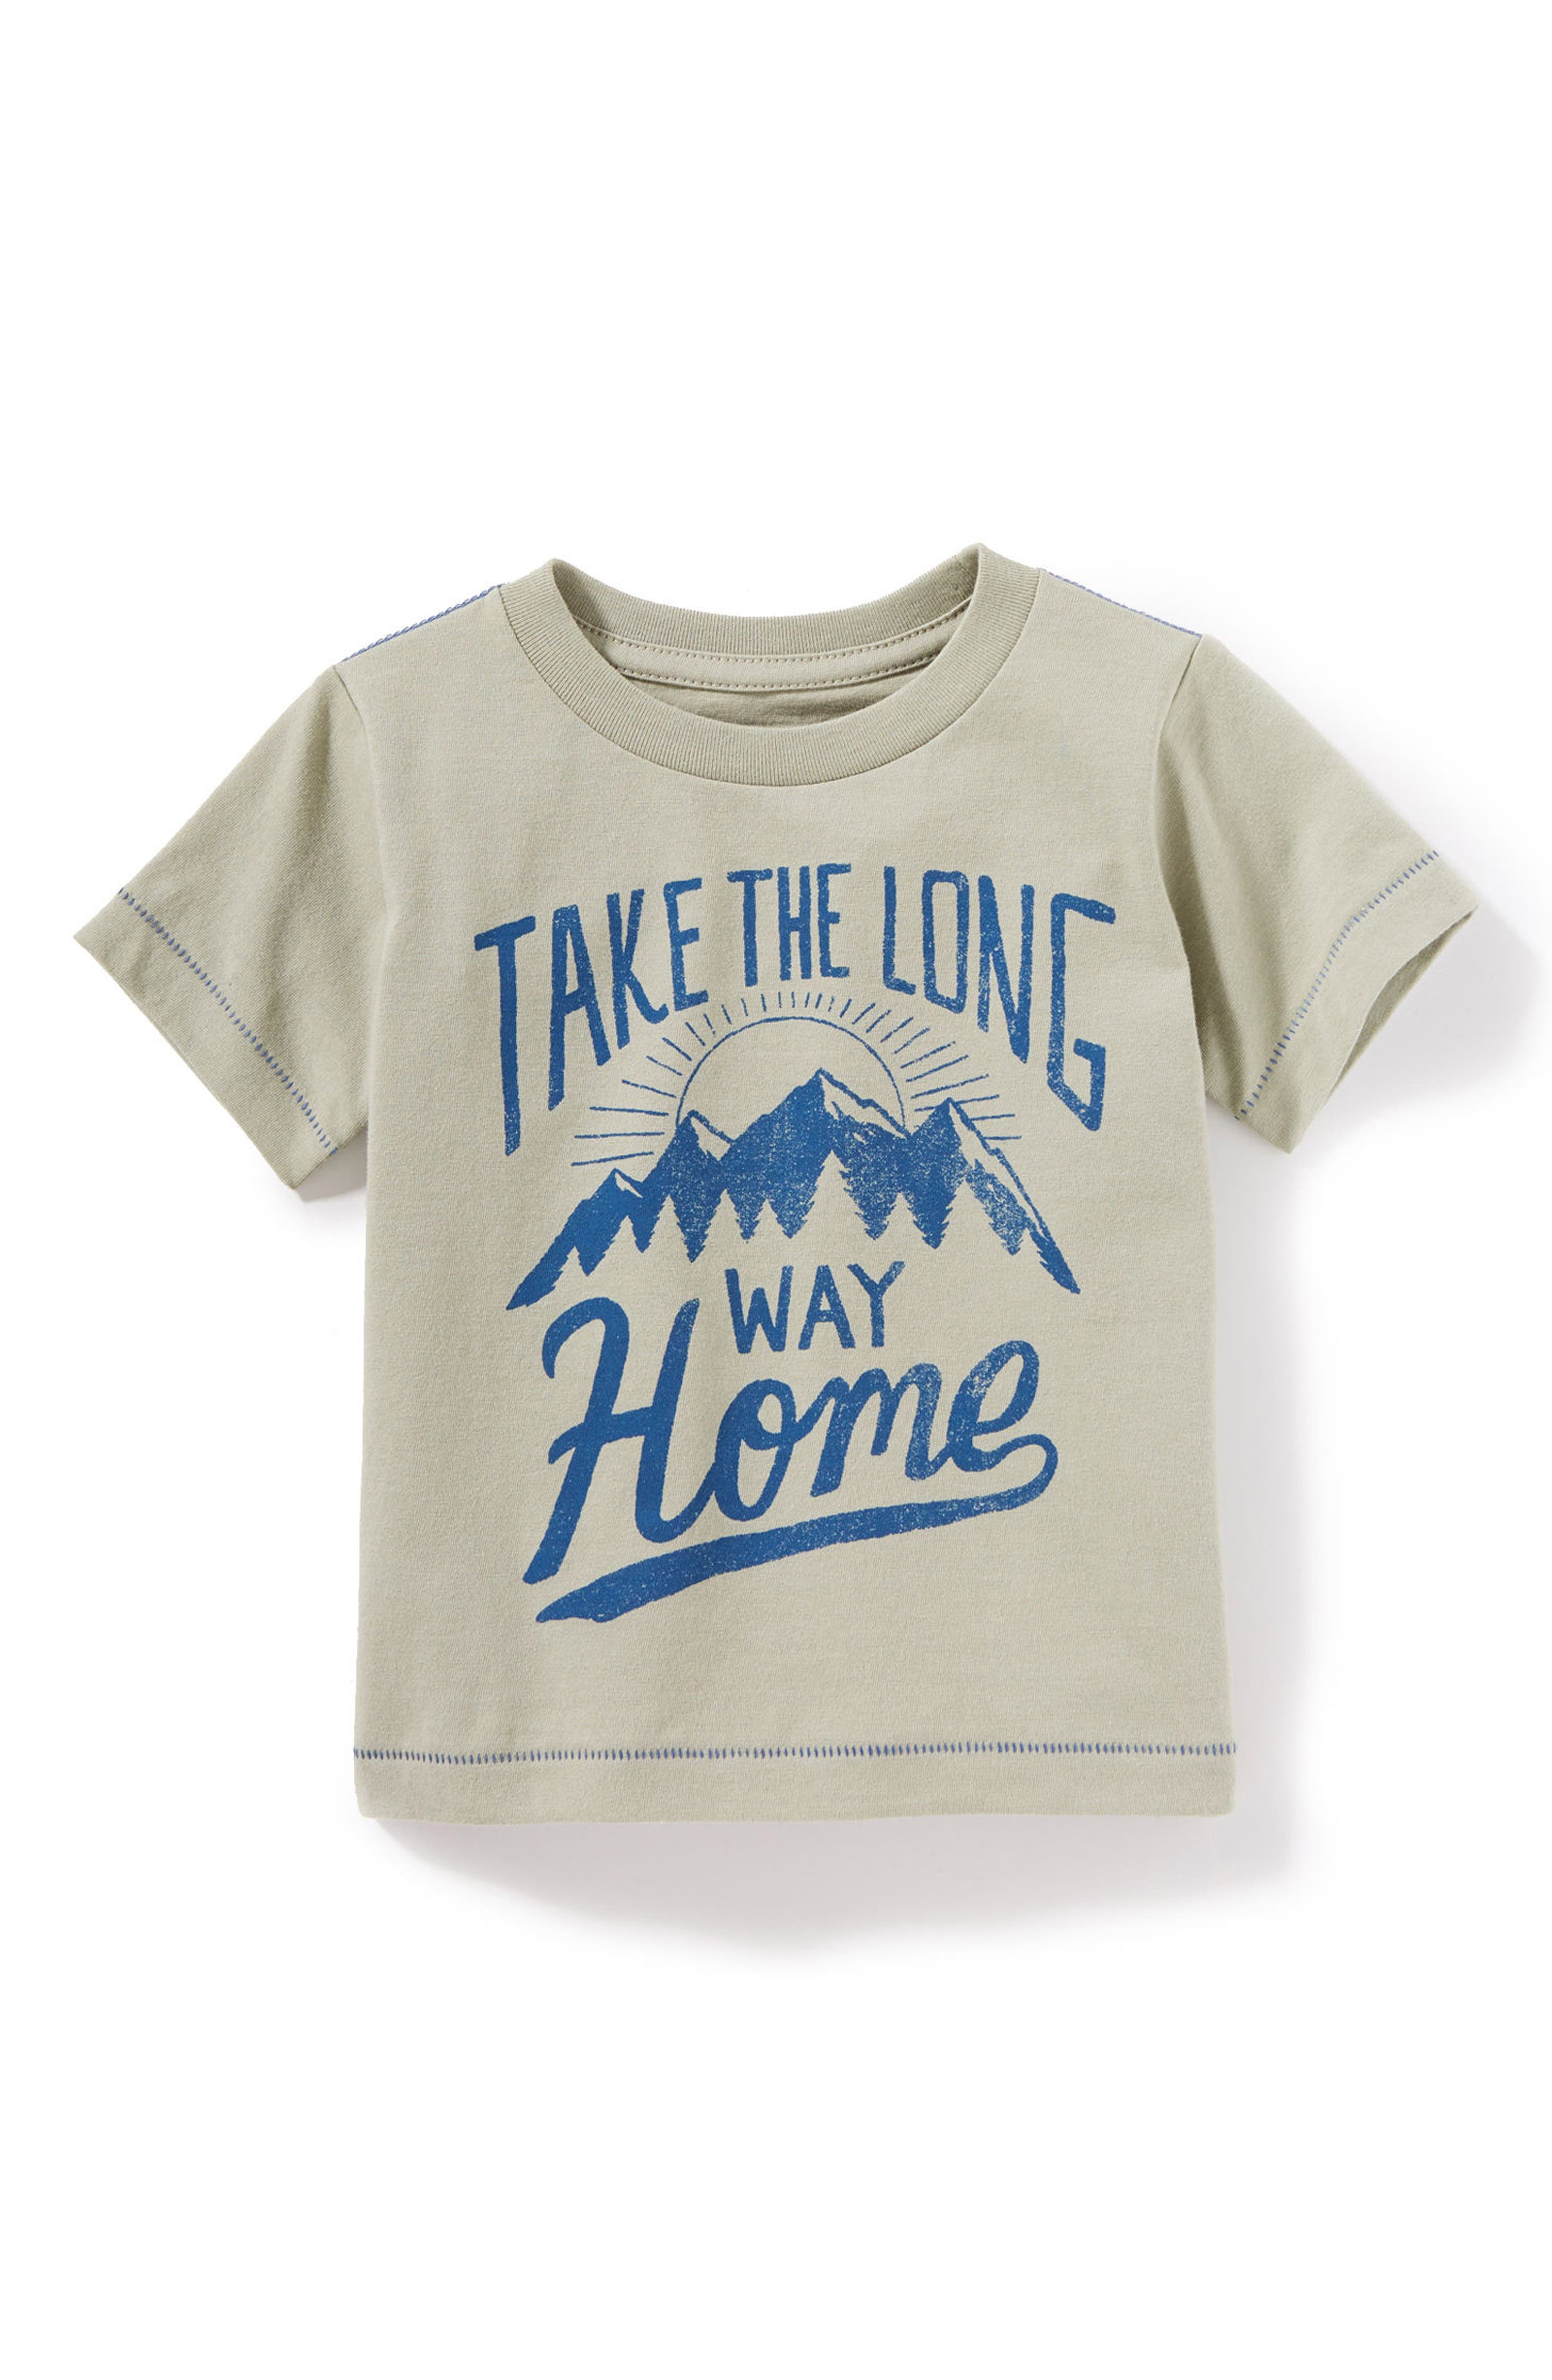 Alternate Image 1 Selected - Peek Take the Long Way Home Graphic T-Shirt (Baby Boys)